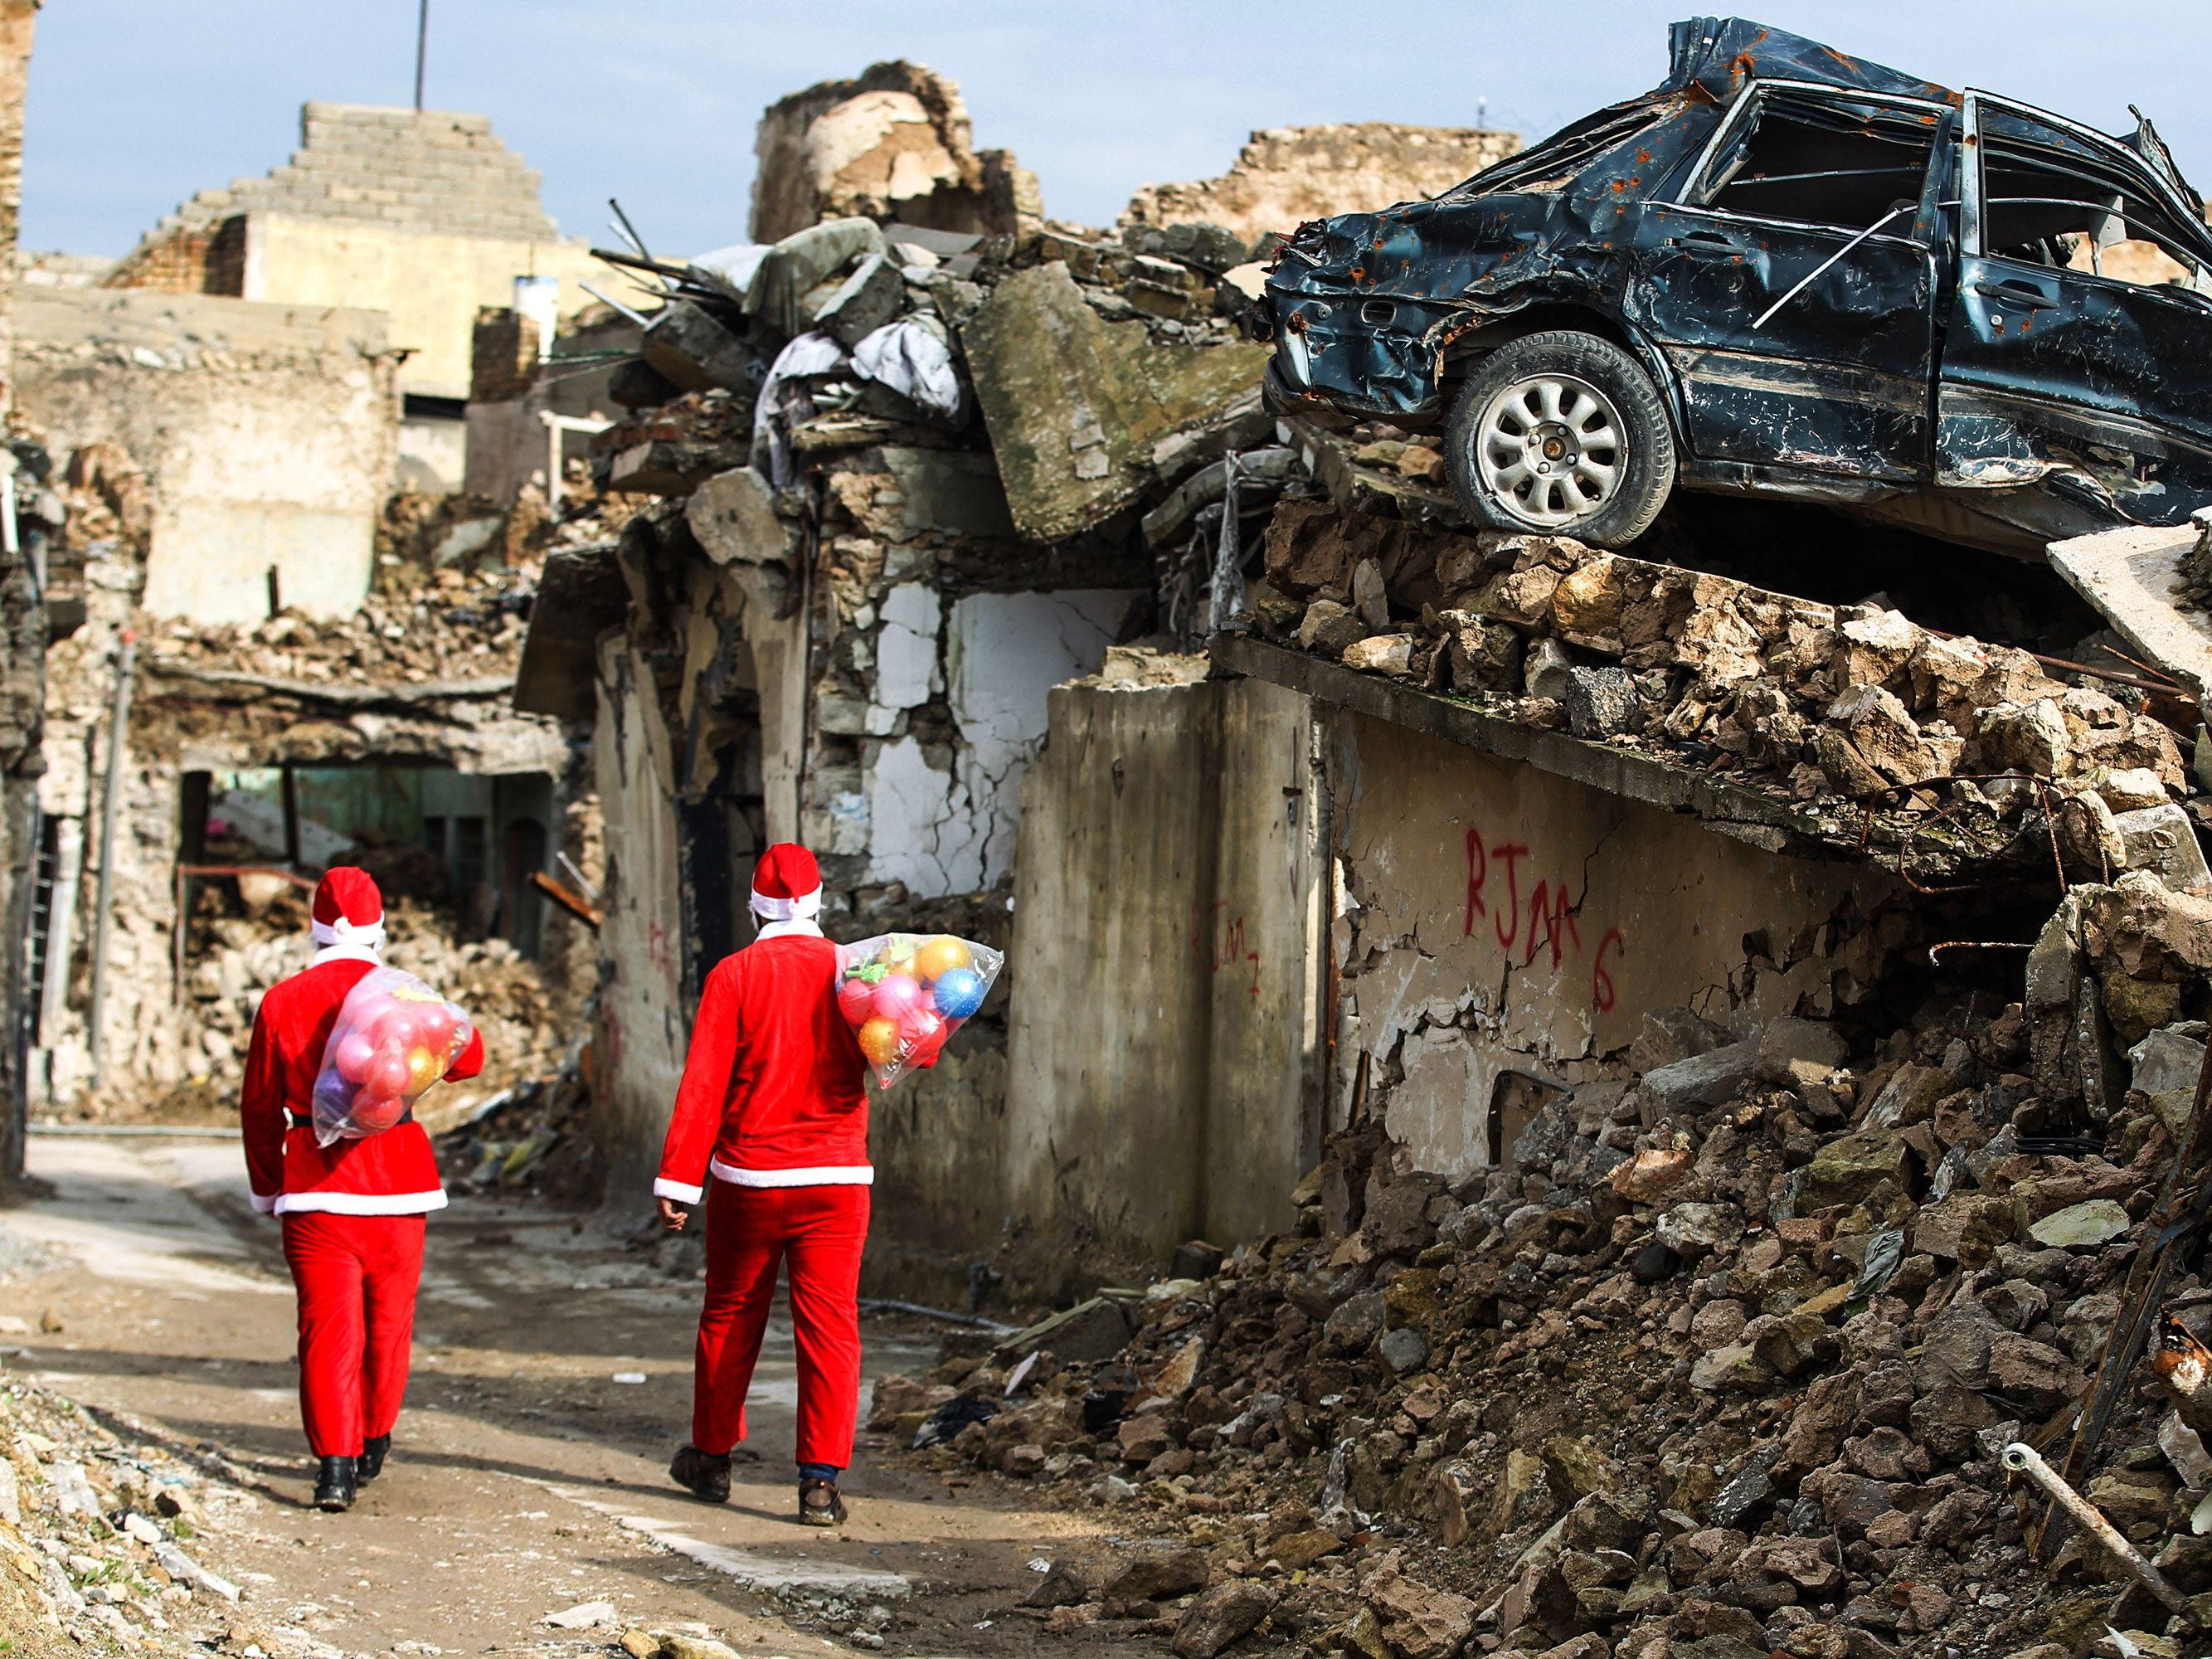 Iraqi youths dressed in Father Christmas suits walk through the streets of the old city of Mosul as they distribute gifts, on Dec. 26, 2018.  Iraq on Dec. 10 marked the first anniversary since declaring victory in its three-year war against the Islamic State (IS) group, which had left the country's former second city and the jihadists' capital in ruin.